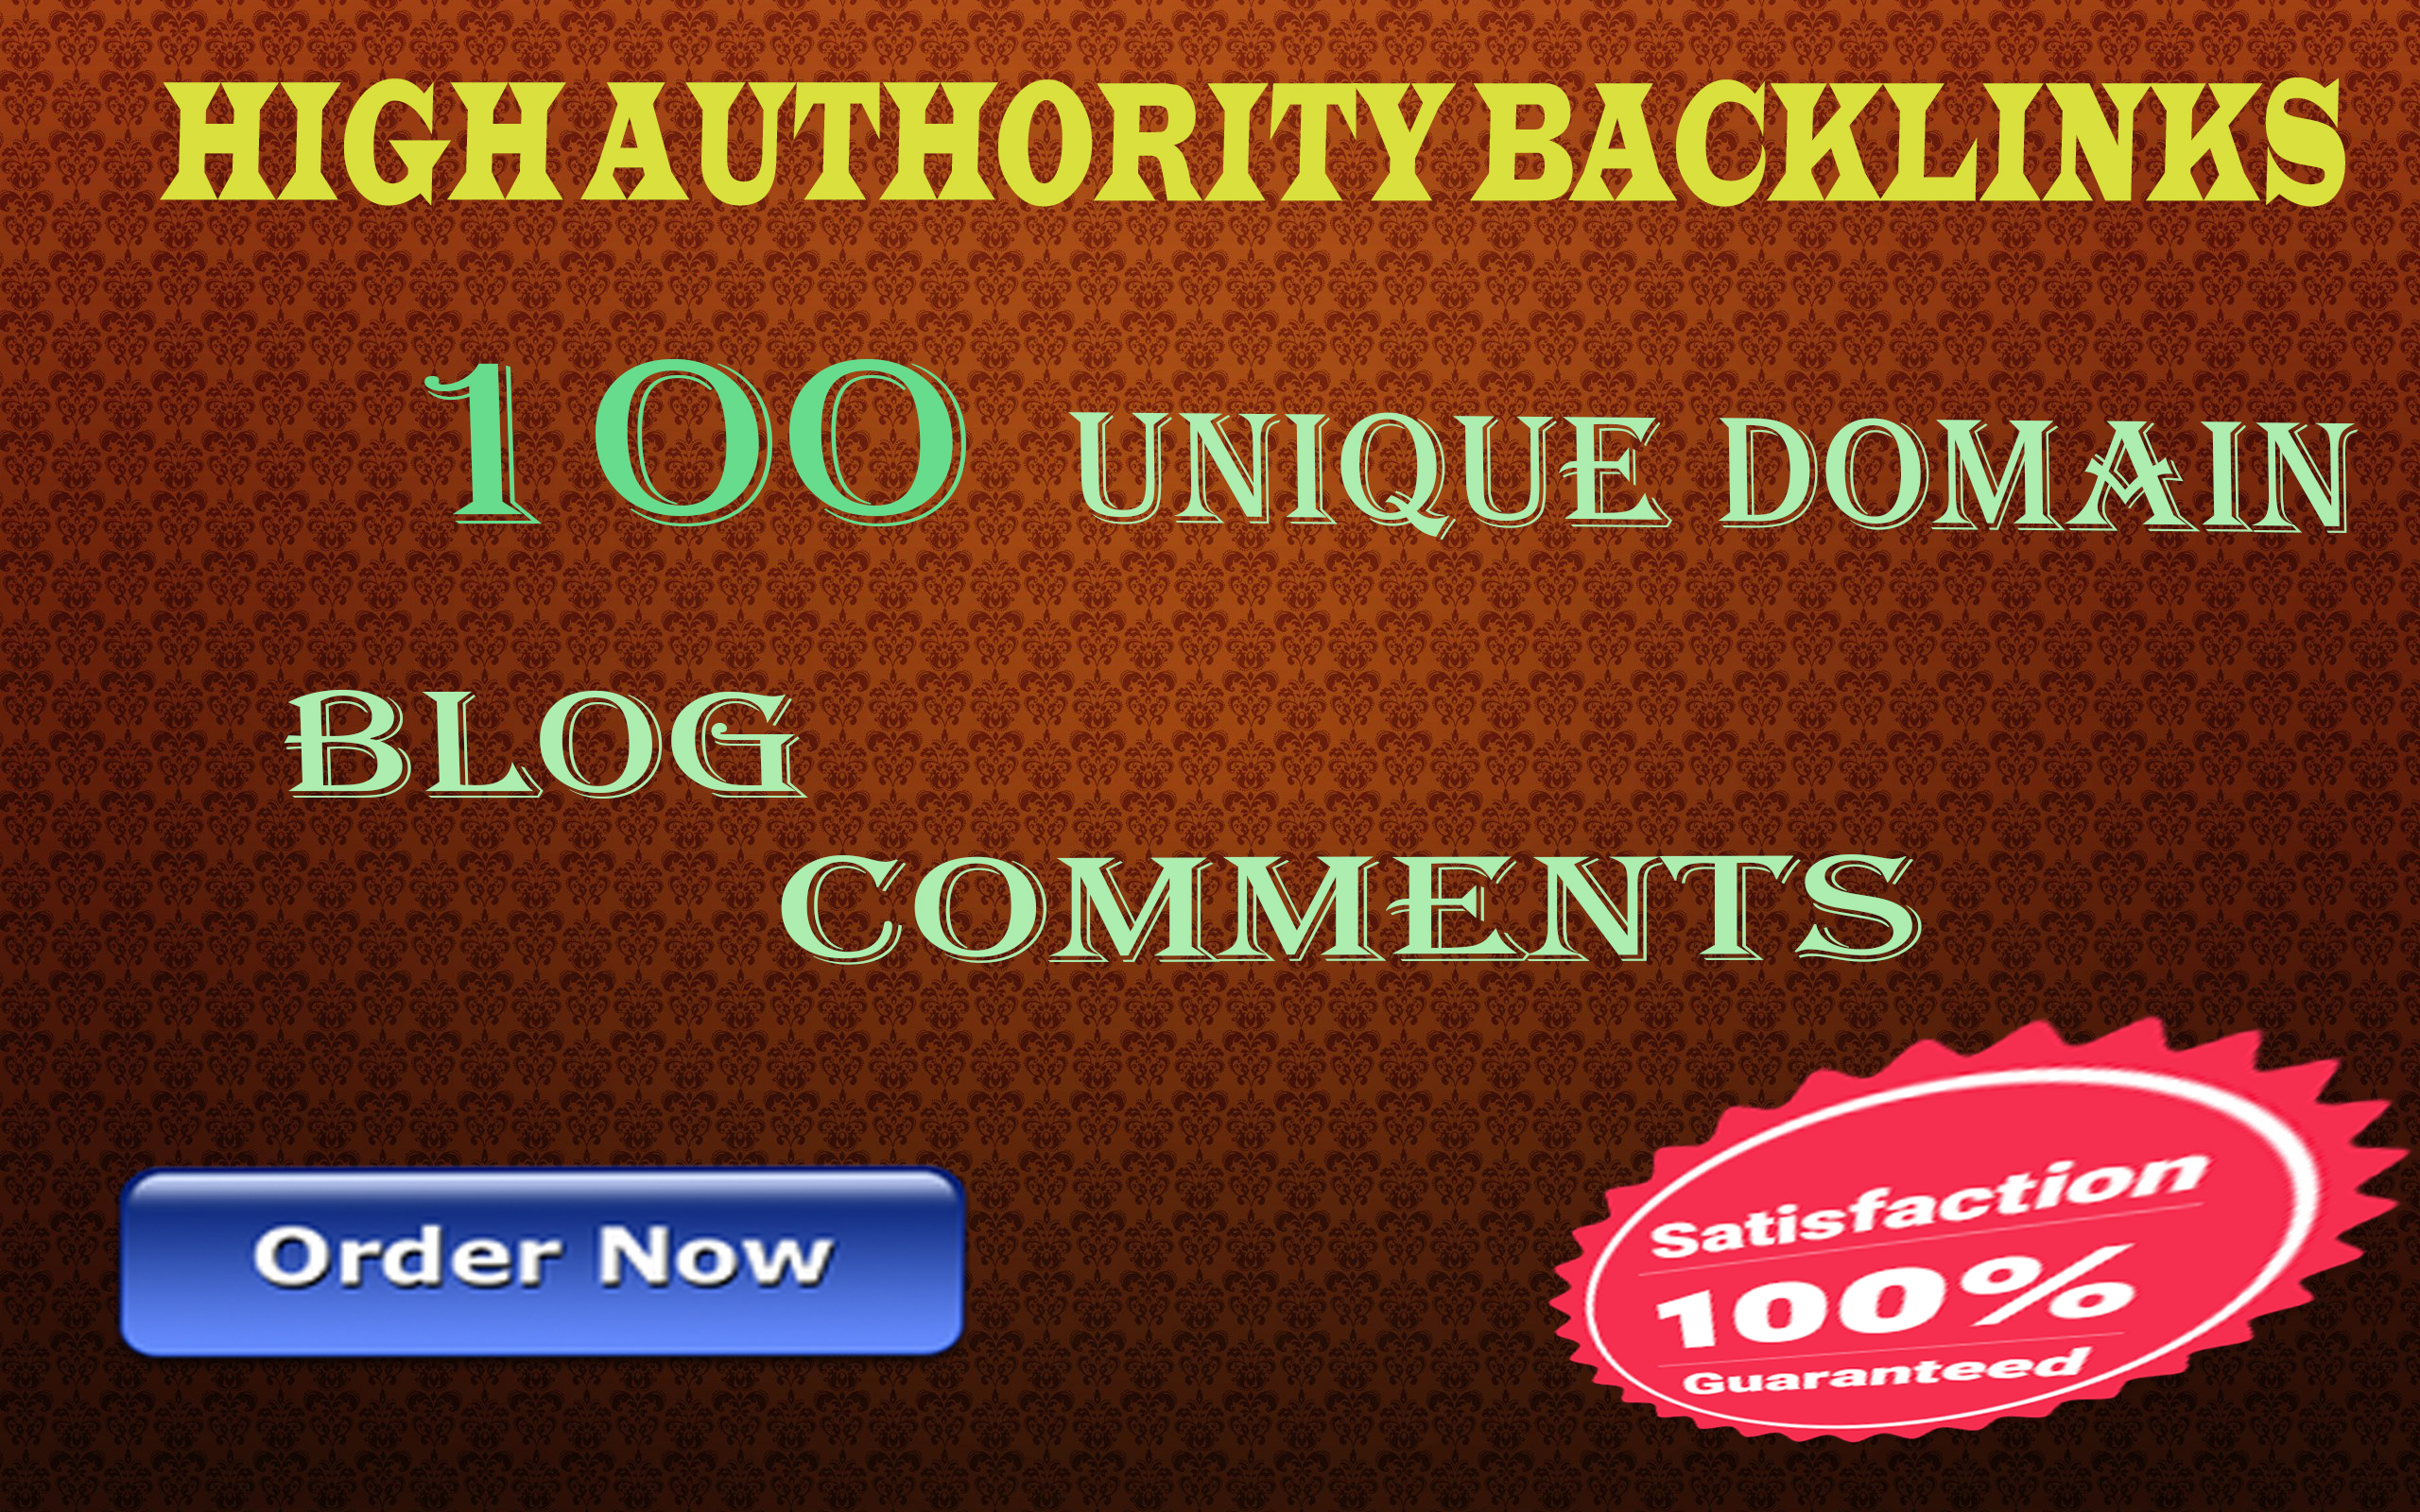 I will create 100 unique domain blog comments on high authority sites